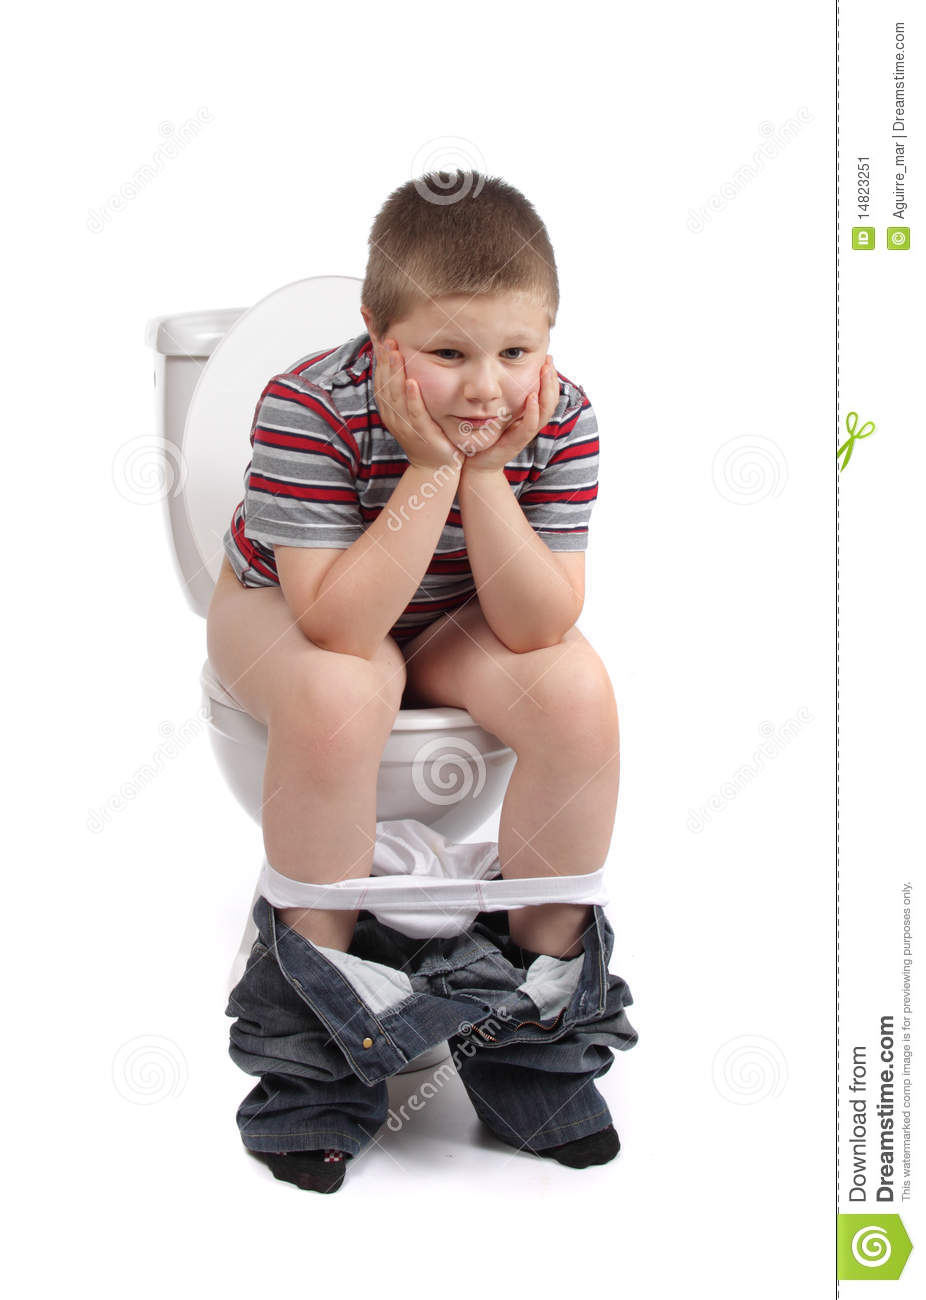 Little Girl Sitting On Potty - newhairstylesformen2014.com